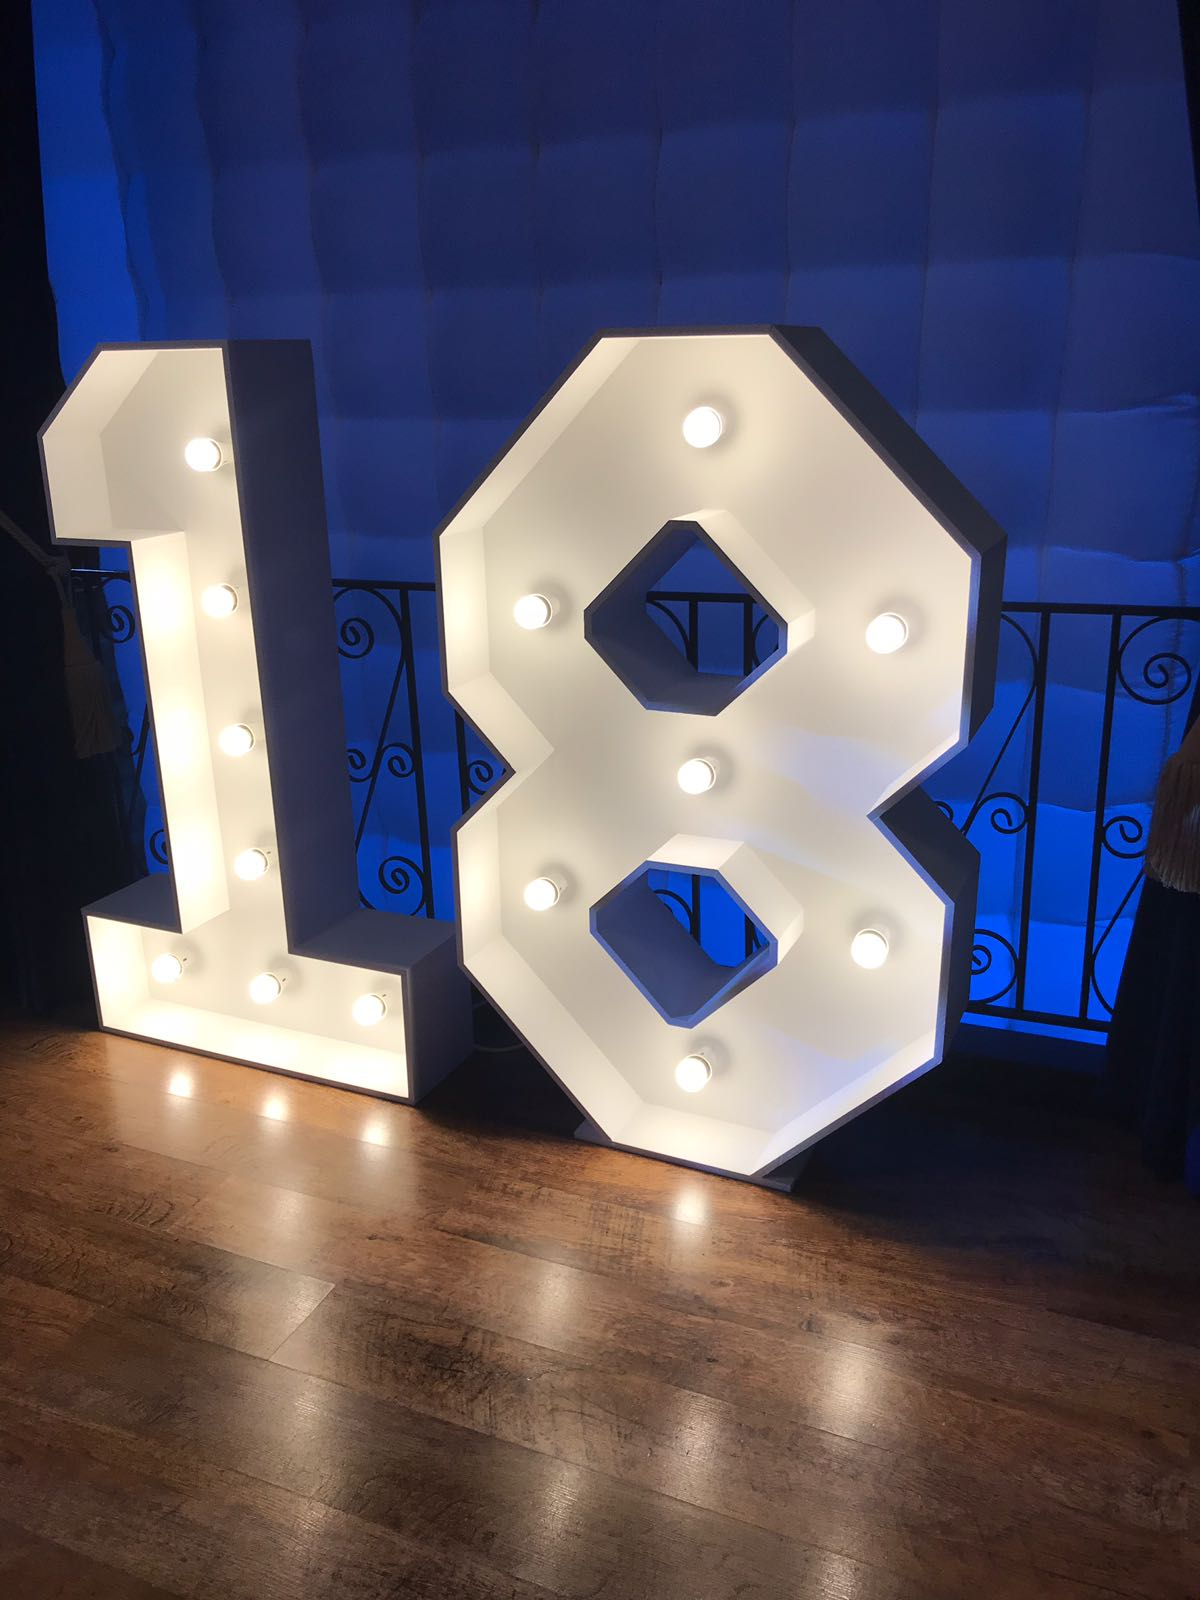 4ft light up number 18